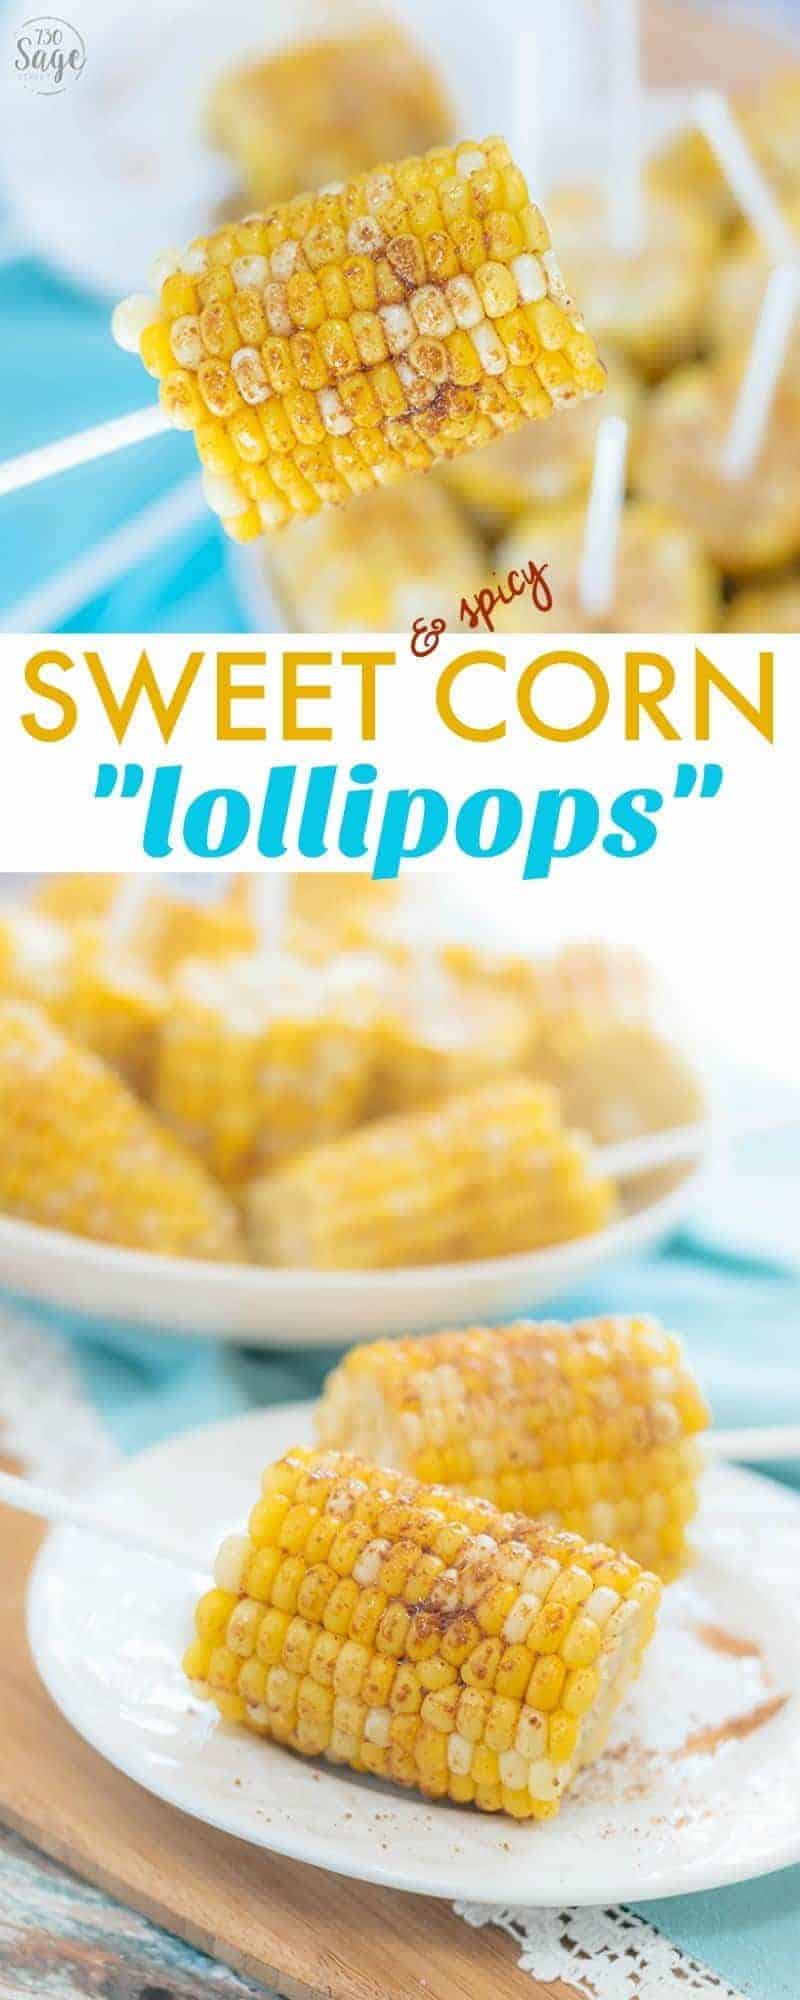 These delicious, unique Sweet and Spicy Corn Lollipops are easy to make and add a fun twist to your spring and summer get-togethers, barbecues and parties.